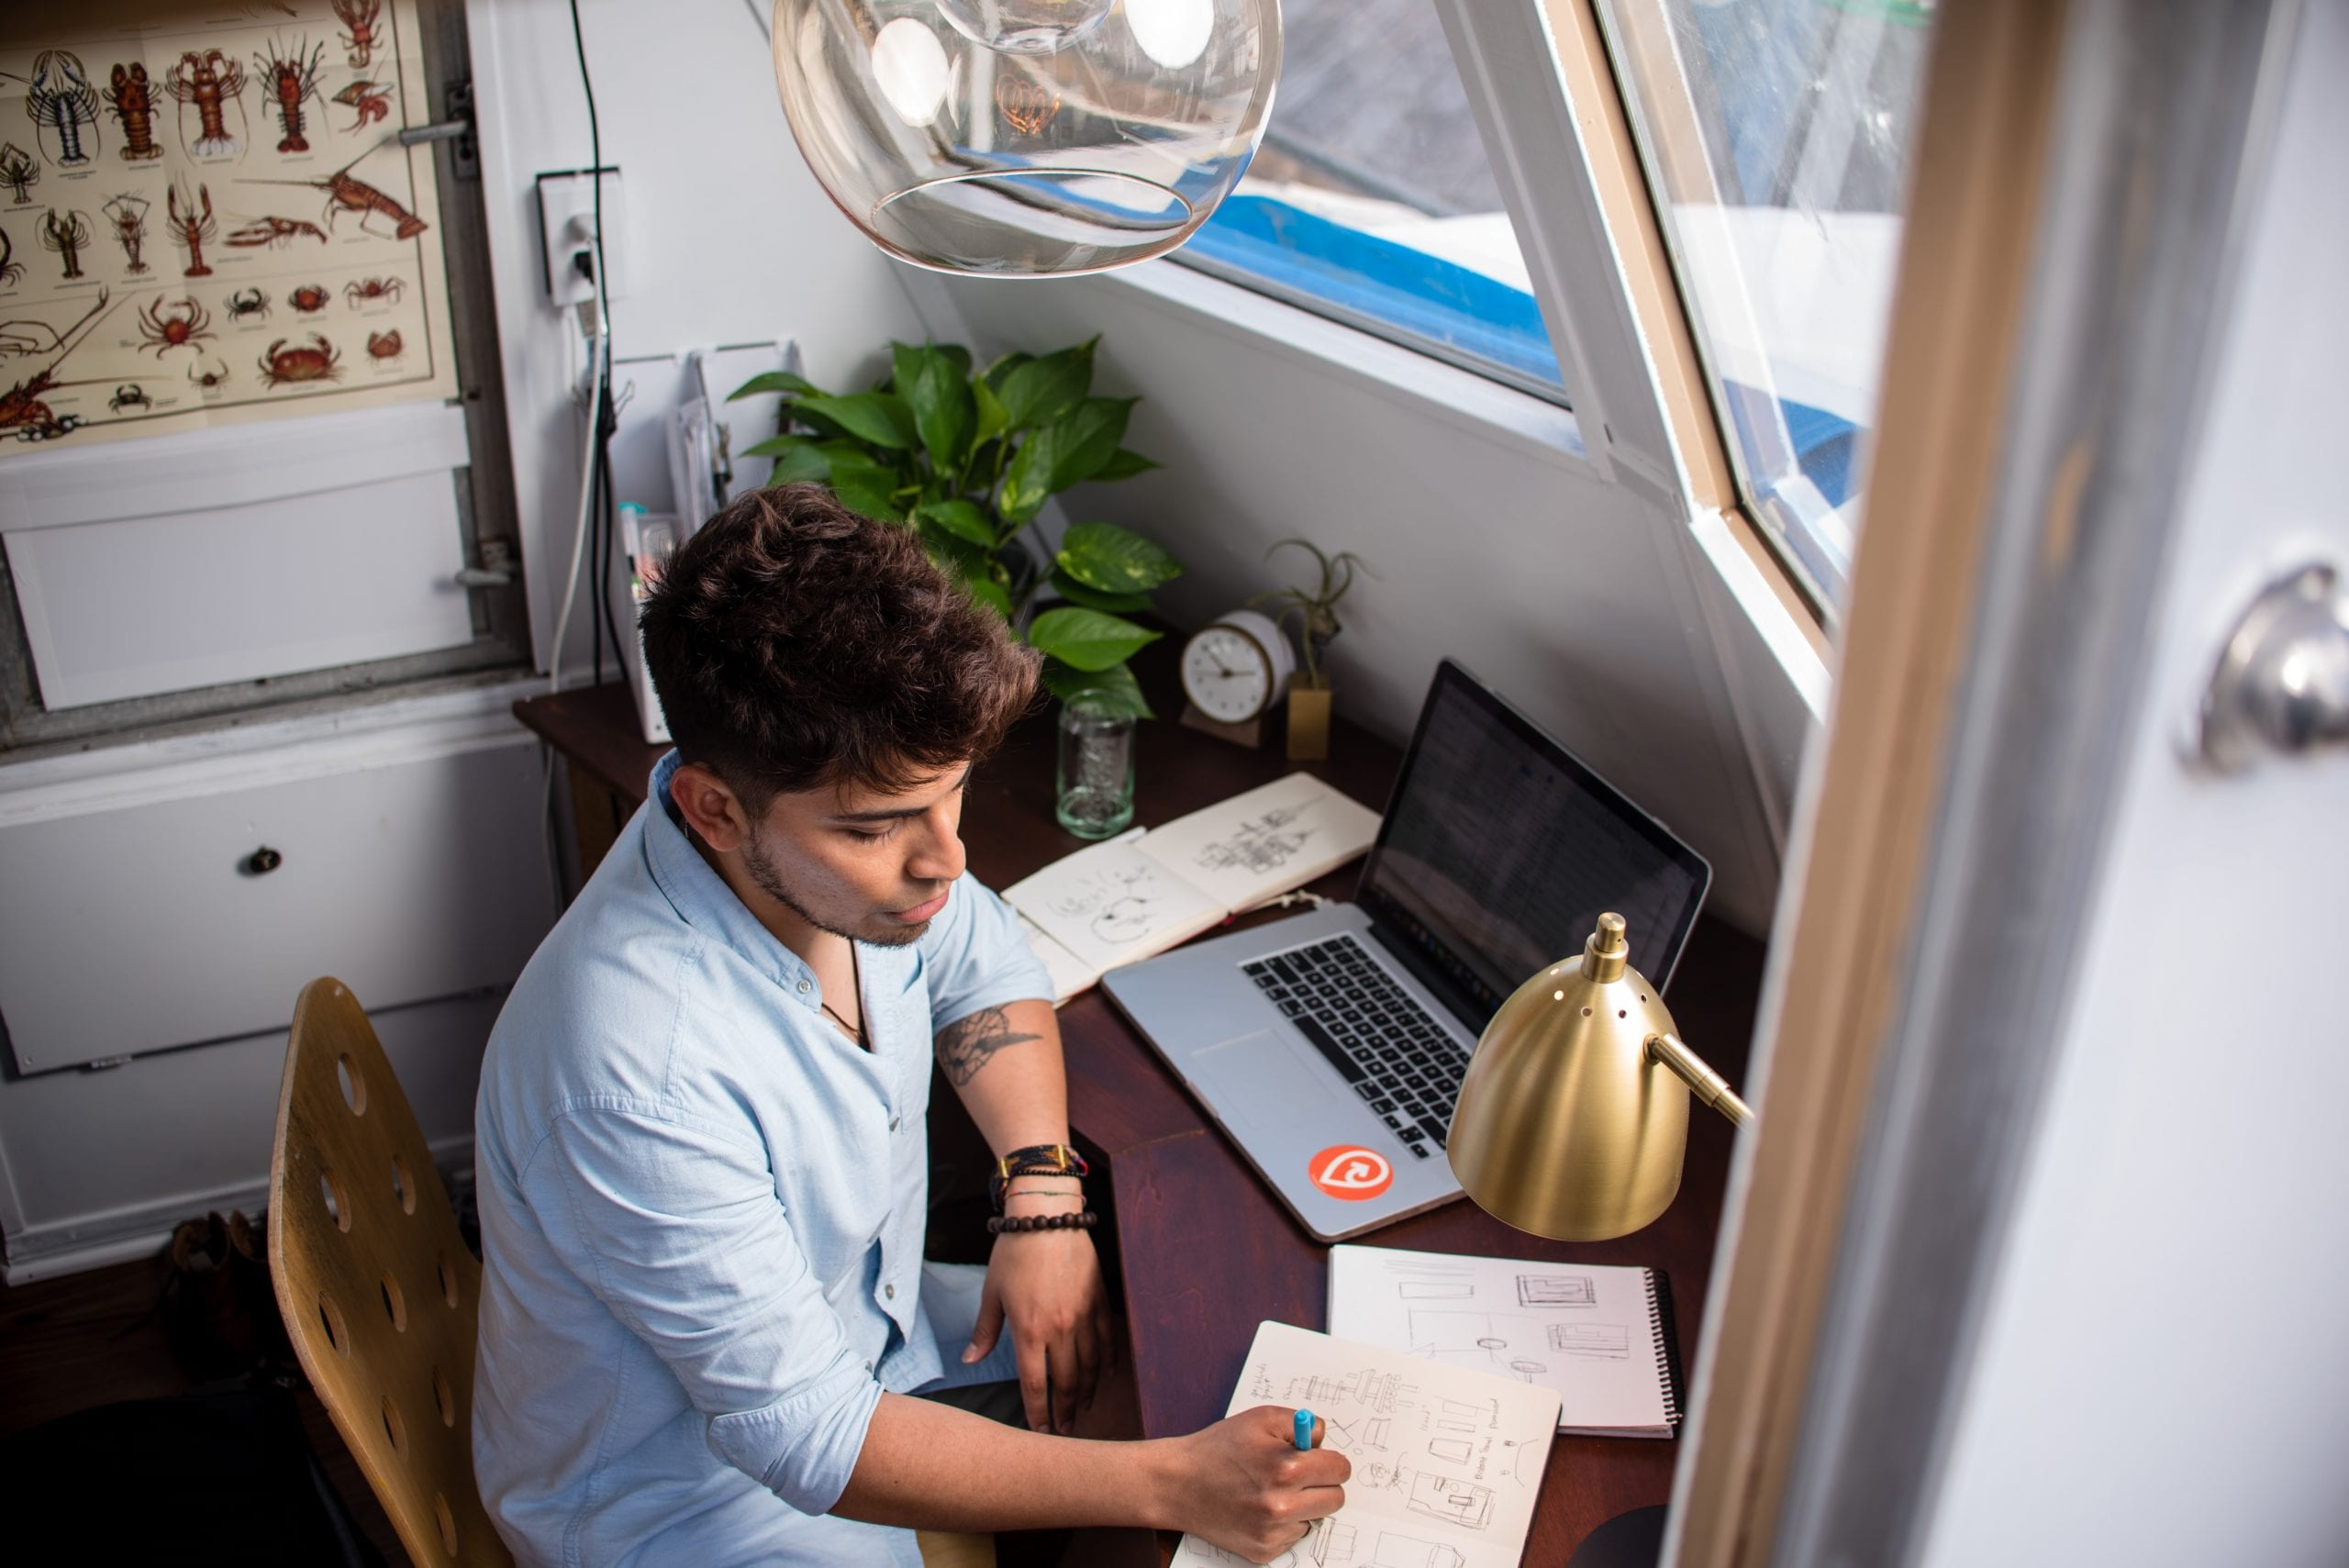 Useful tips to help you work from home during the coronavirus outbreak